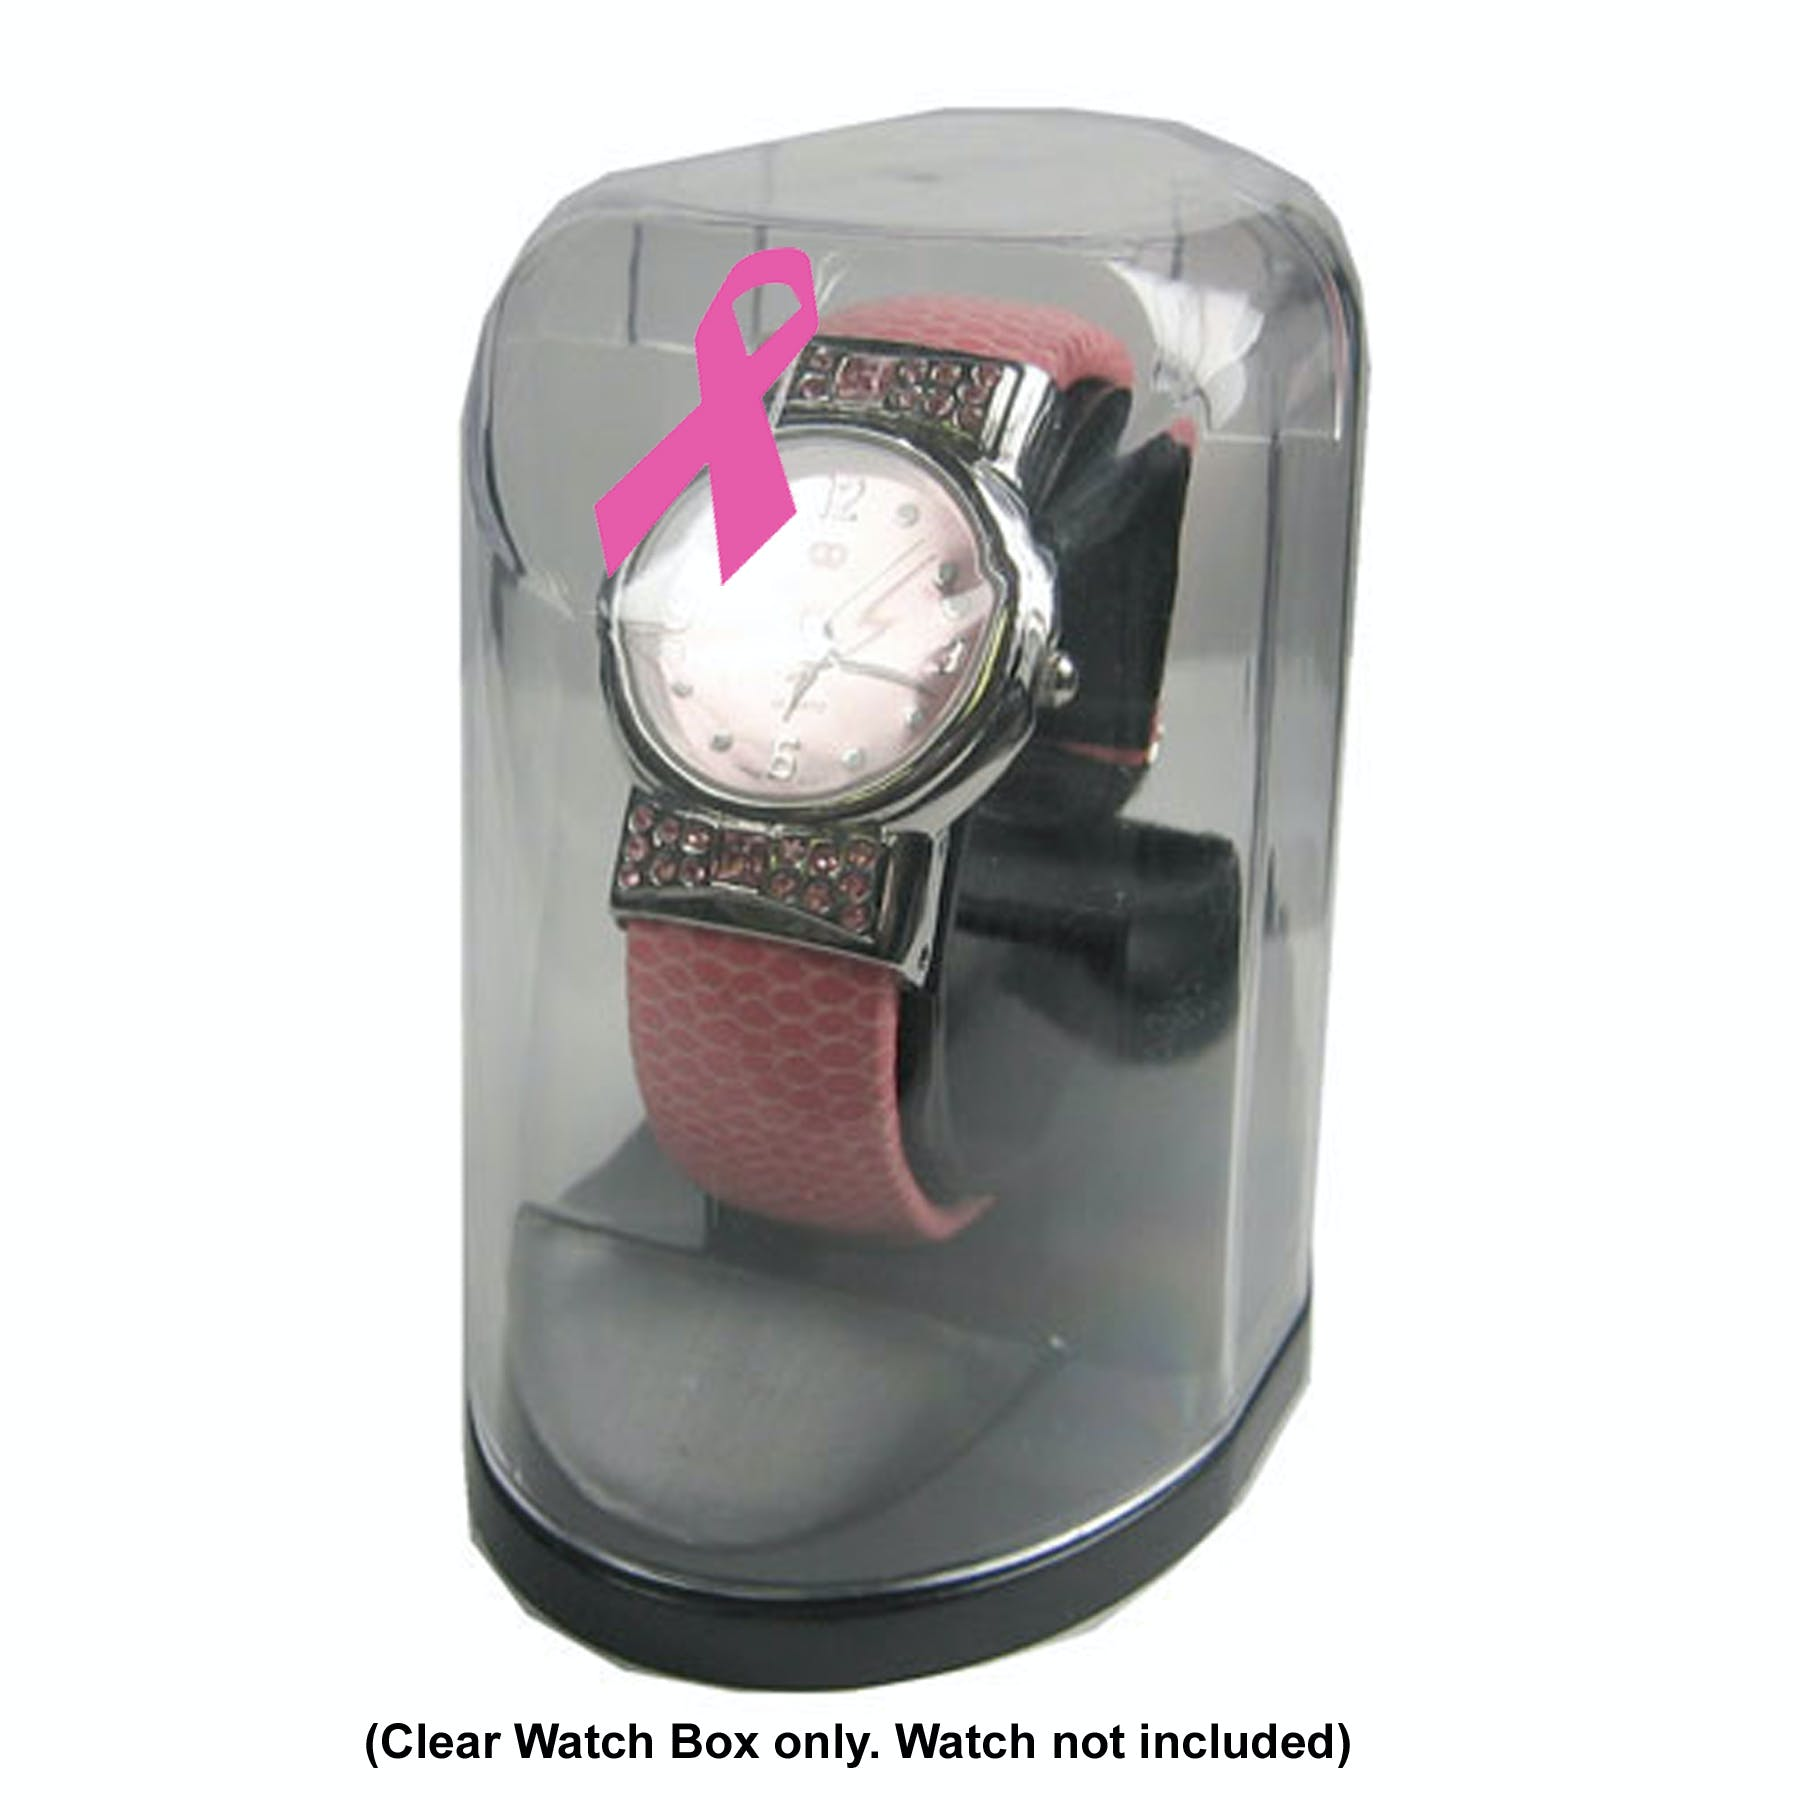 Plastic Watch Box with Watch Holder (Item # GJKNO-GWRXP) Custom packaging sold by InkEasy